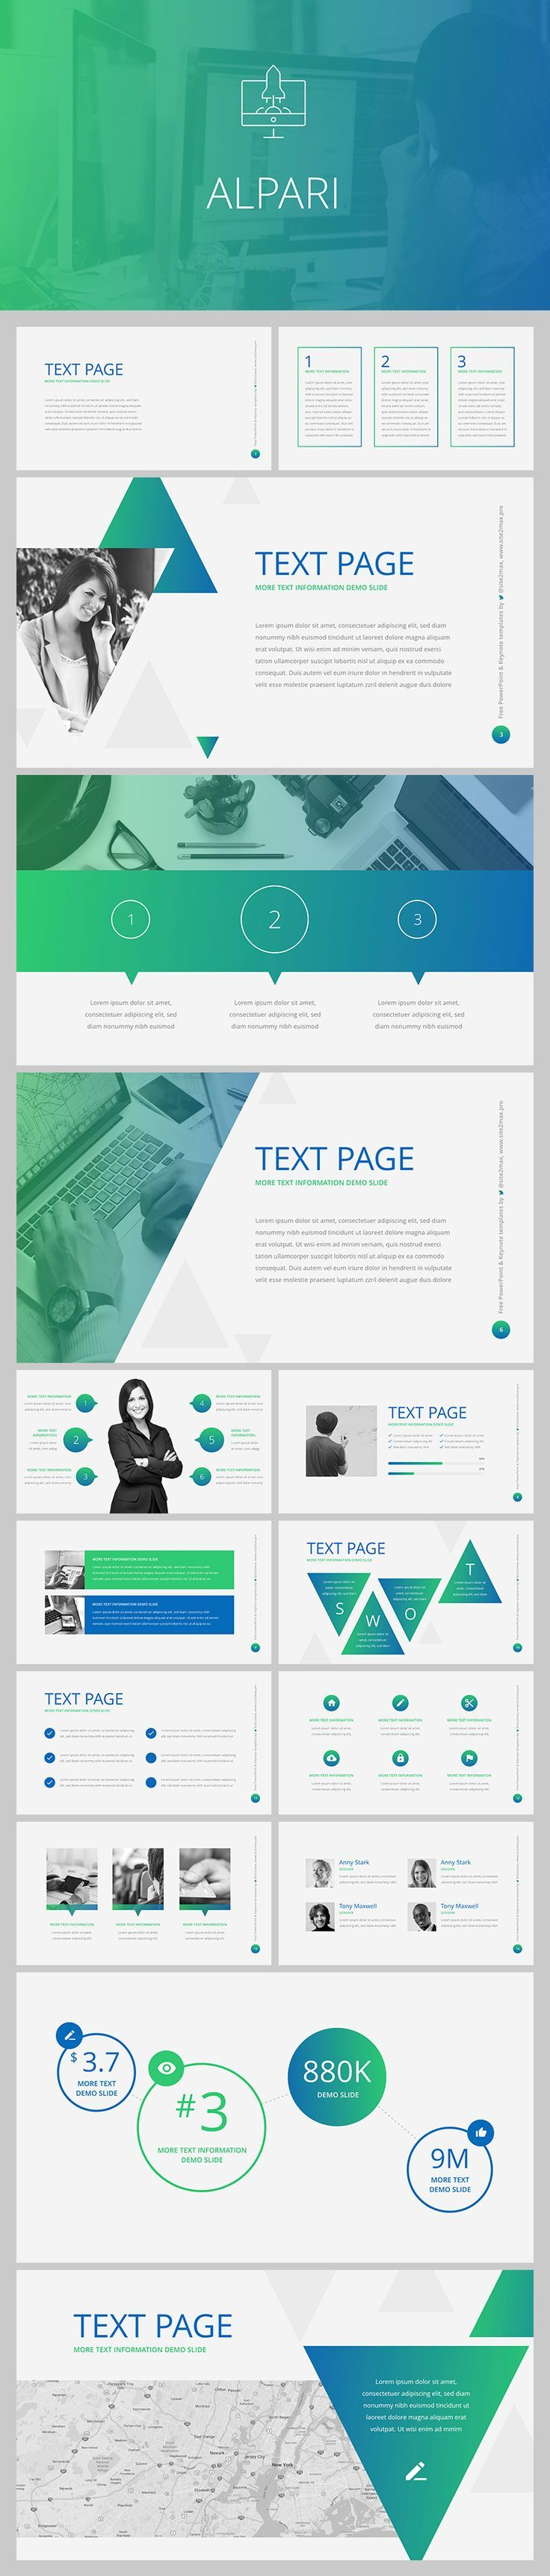 The 25 best free ppt template ideas on pinterest powerpoint alpari marketing free powerpoint template for create business or marketing presentation toneelgroepblik Images